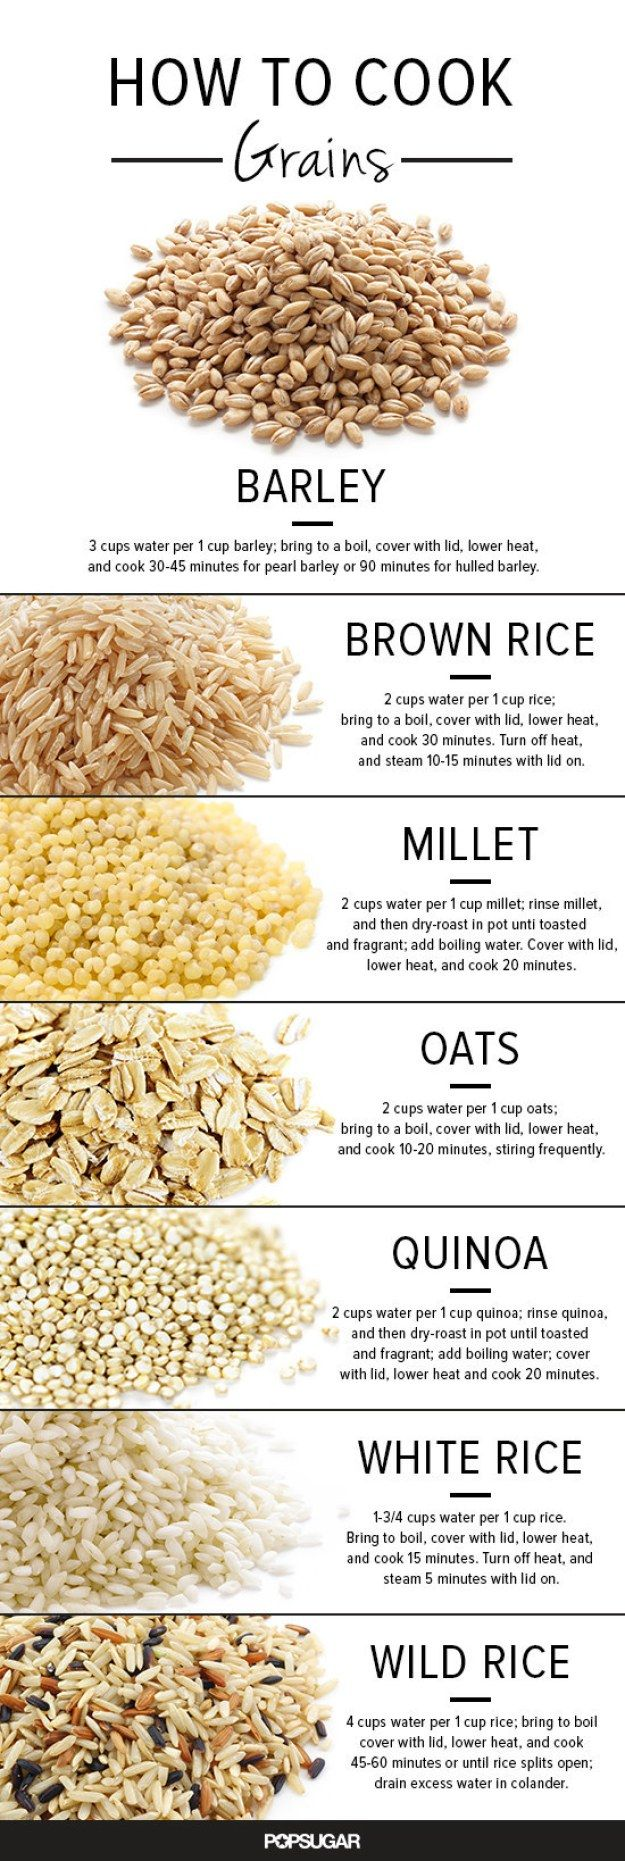 24 Must-See Diagrams That Will Make Eating Healthy Super Easy   BodyRock